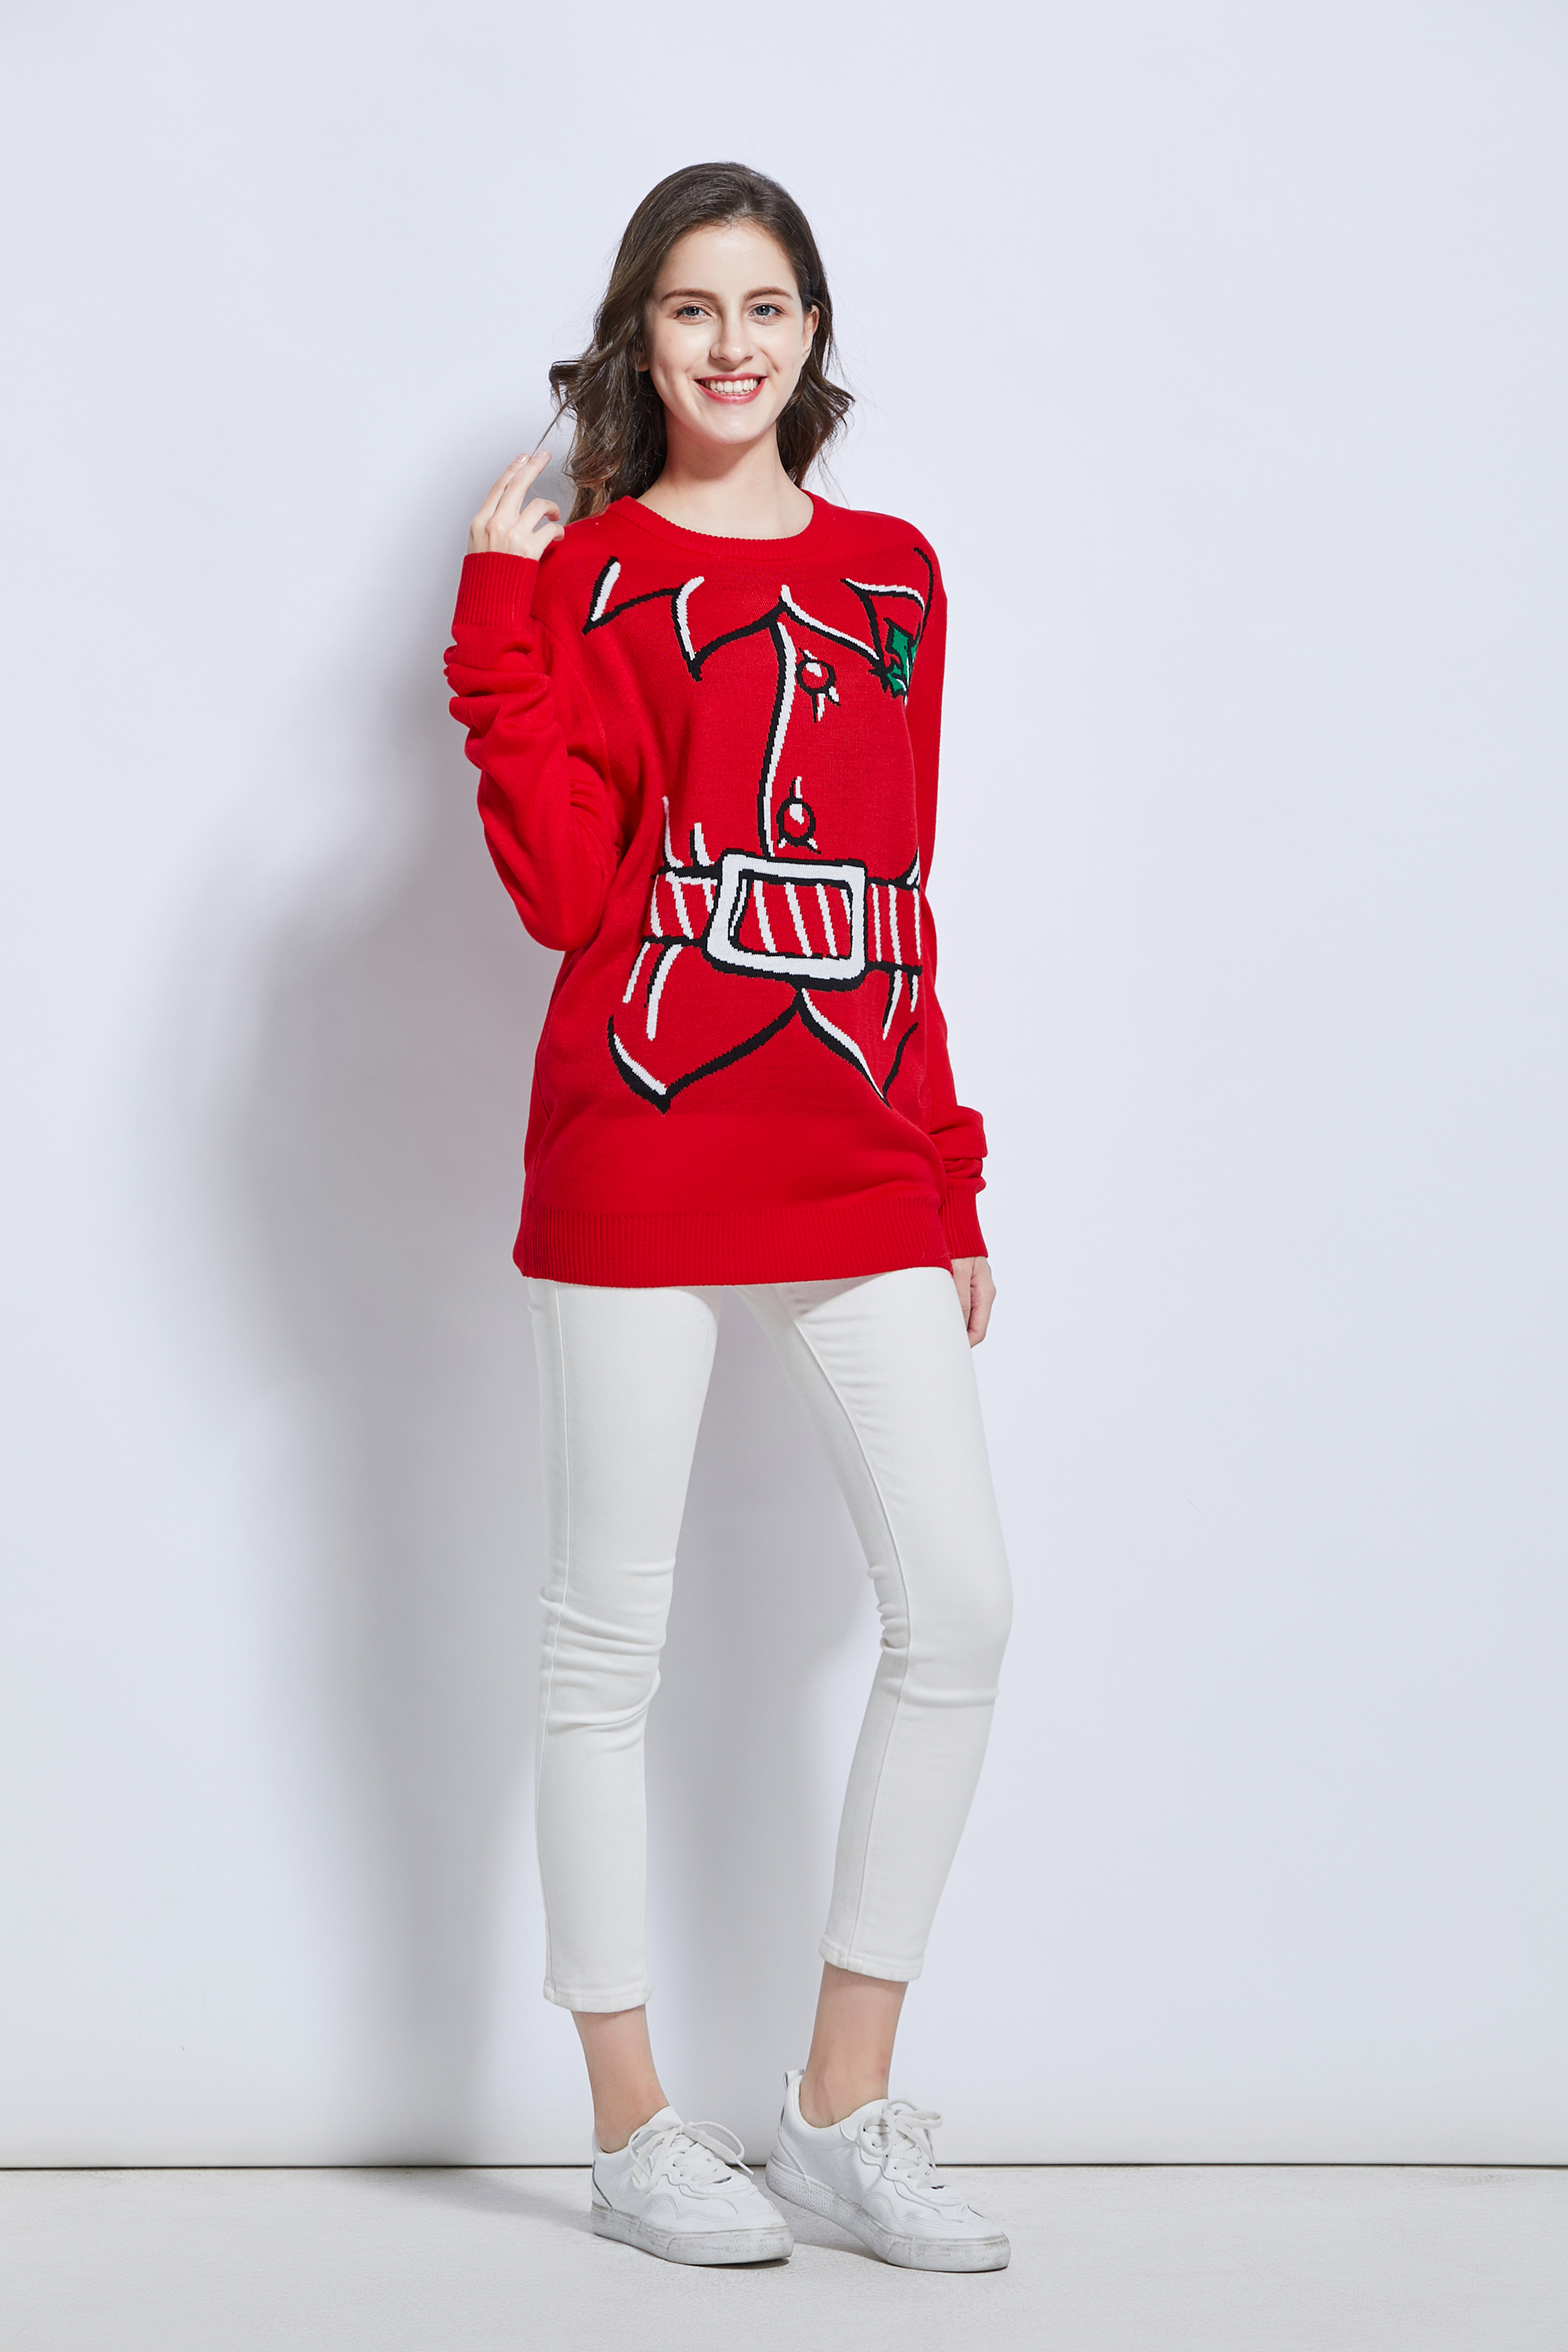 Team club player Festival promotion jacquard unisex knitting Christmas design rudolph reindeer ugly Christmas sweater